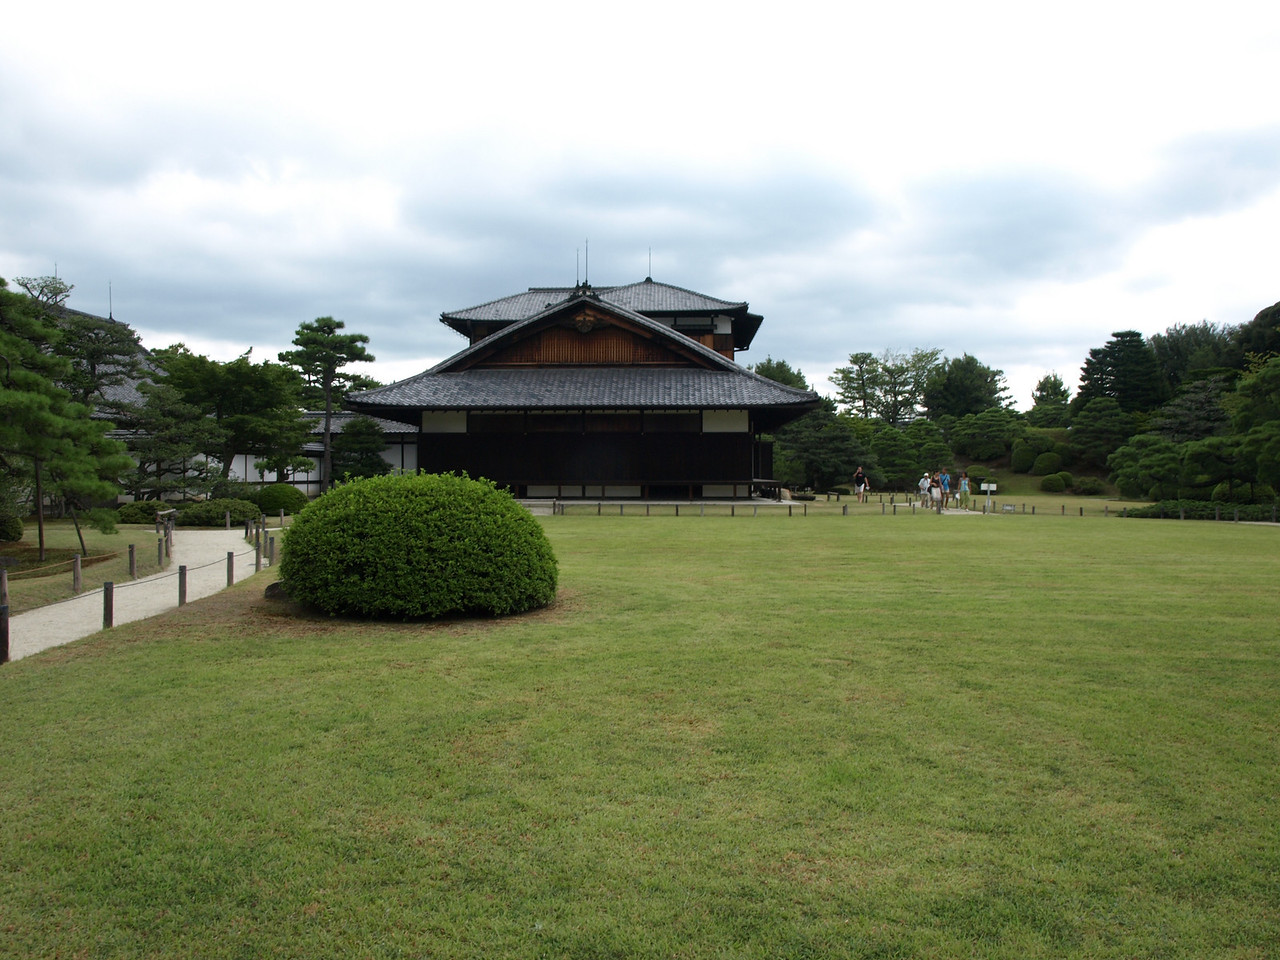 One last view of princess Kazunomiya's palace before continuing on our way